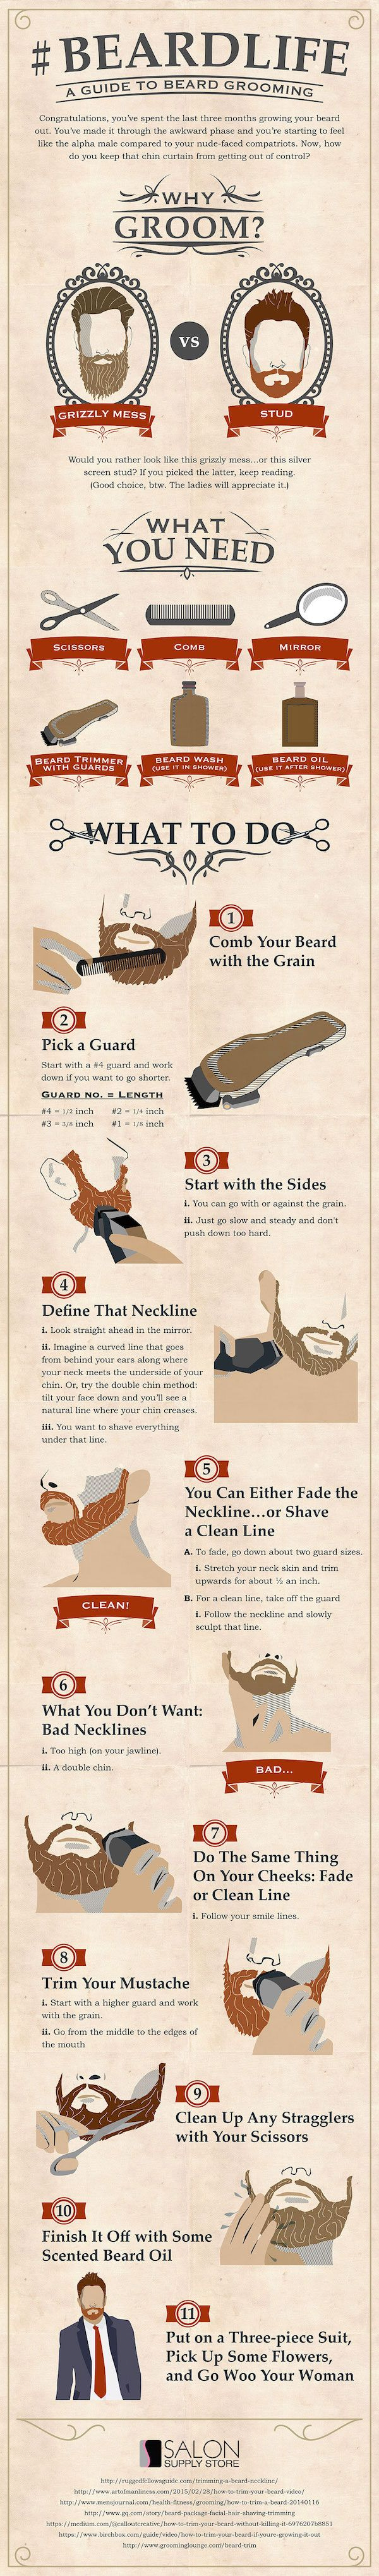 17 best images about executive contour on pinterest. Black Bedroom Furniture Sets. Home Design Ideas